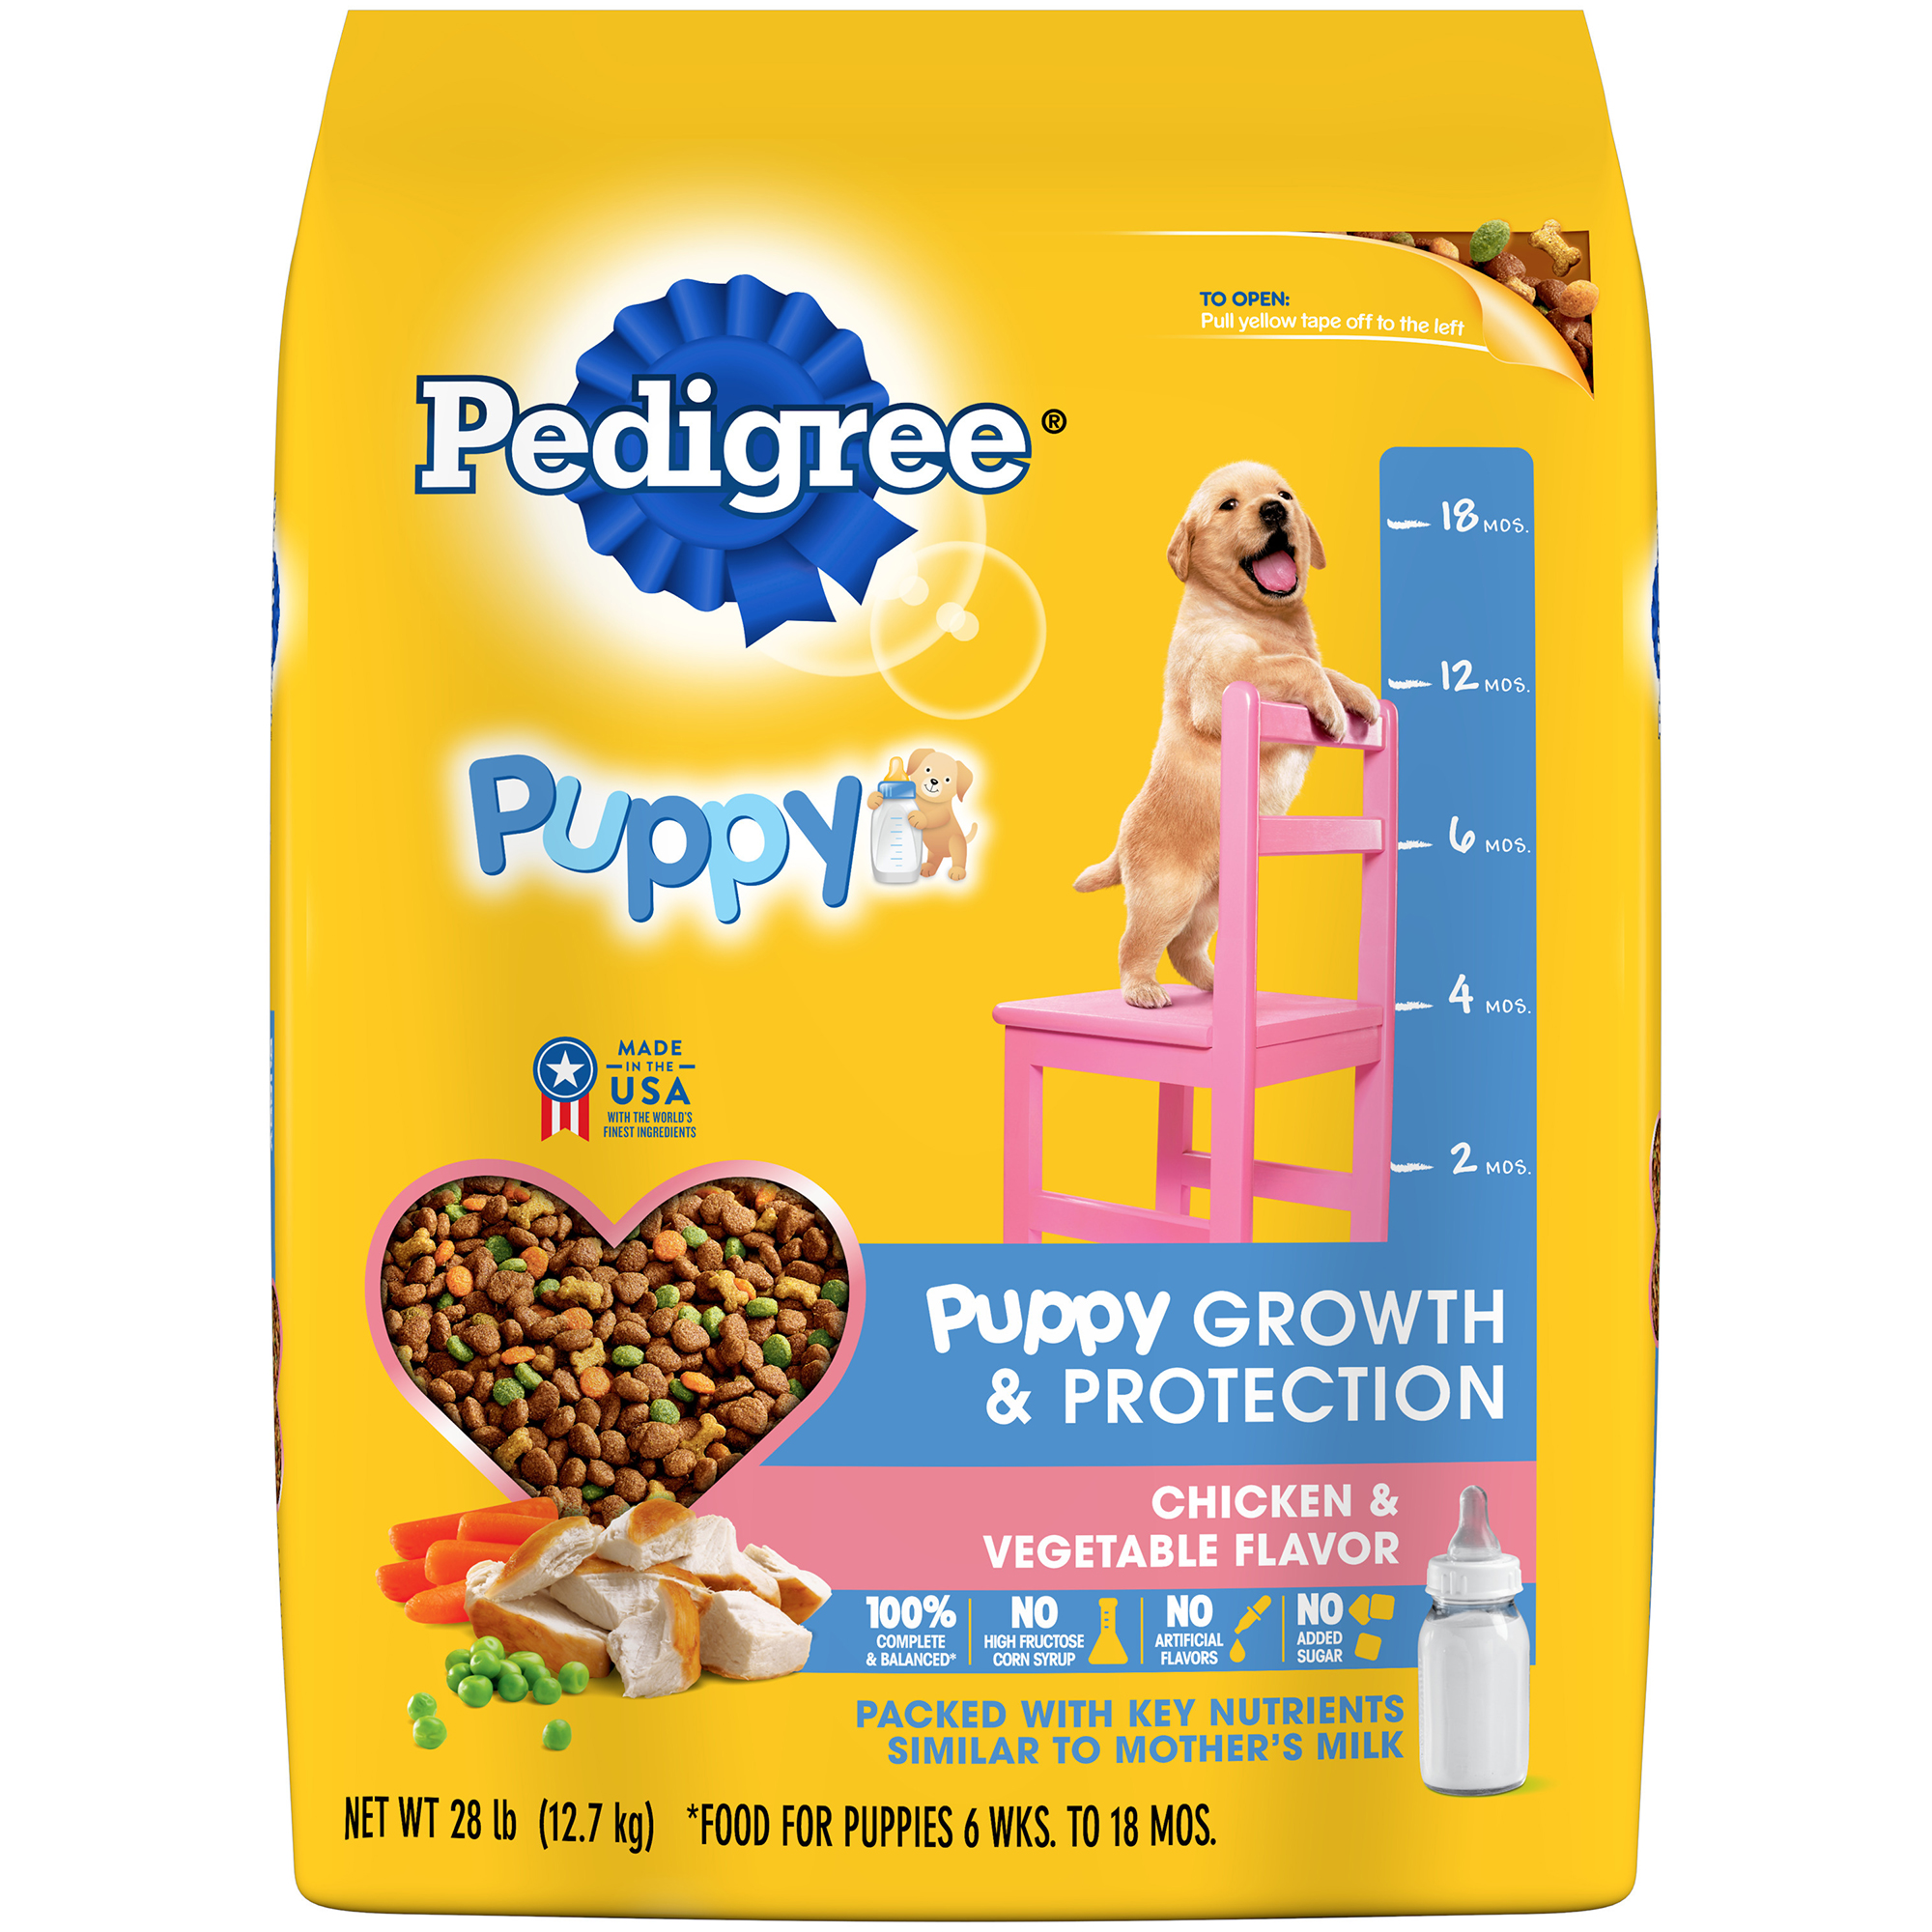 PEDIGREE Puppy Growth & Protection Chicken & Vegetable Flavor Dry Dog Food 28 Pounds